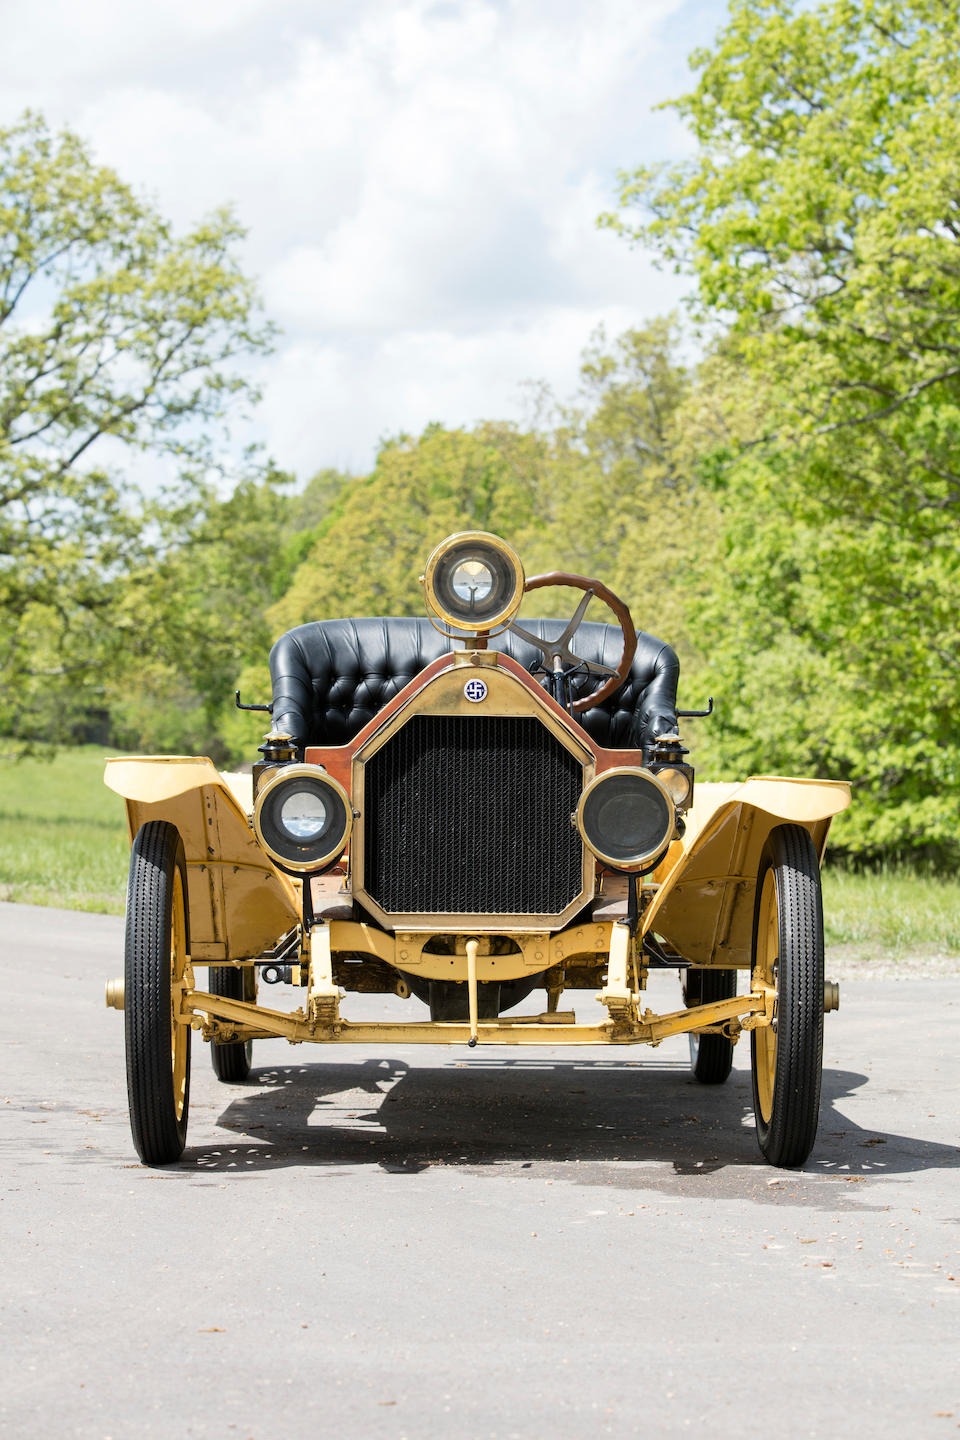 <B>1912 K-R-I-T  MODEL A ROADSTER<br /></B><BR />Engine no. 231926